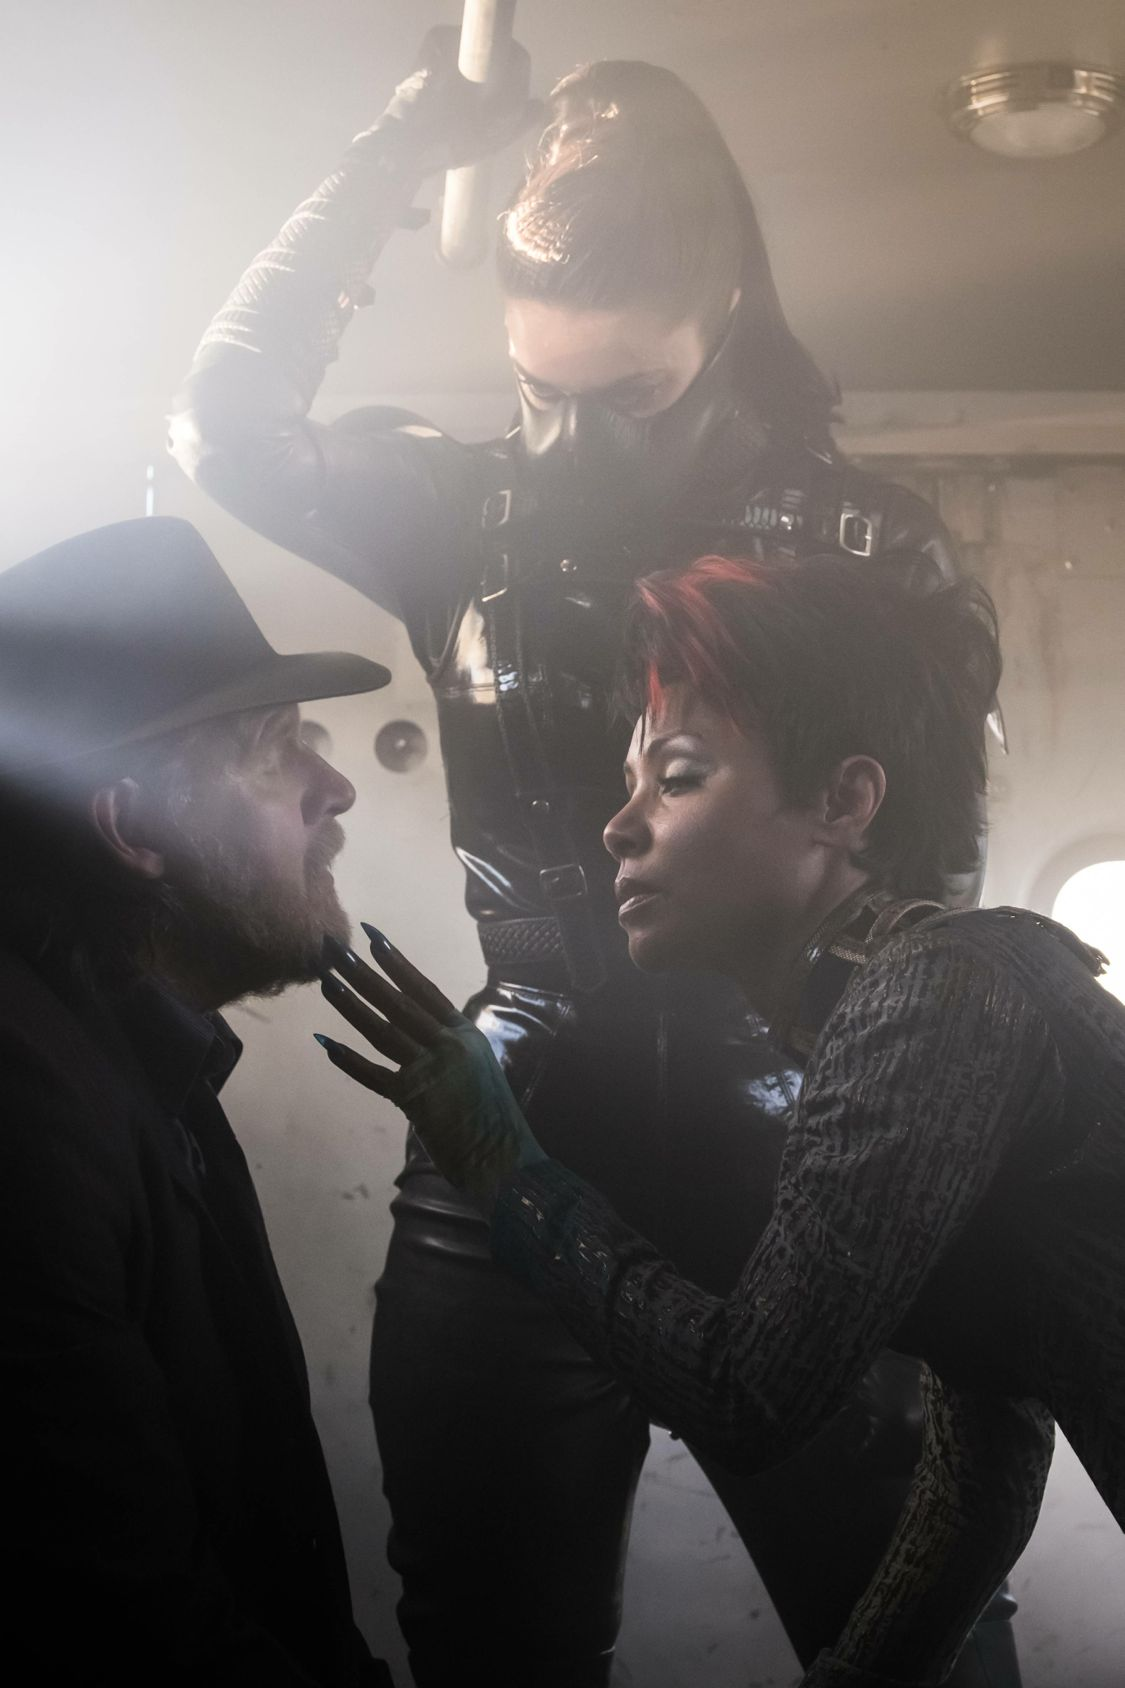 """GOTHAM: L-R: Donal Logue and guest star Jada Pinkett Smith in the """"Mad City: Burn The Witch"""" episode of GOTHAM airing airing Monday, Sept. 26 (8:00-9:01 PM ET/PT) on FOX.  ©2016 Fox Broadcasting Co. Cr: Jeff Neumann/FOX."""